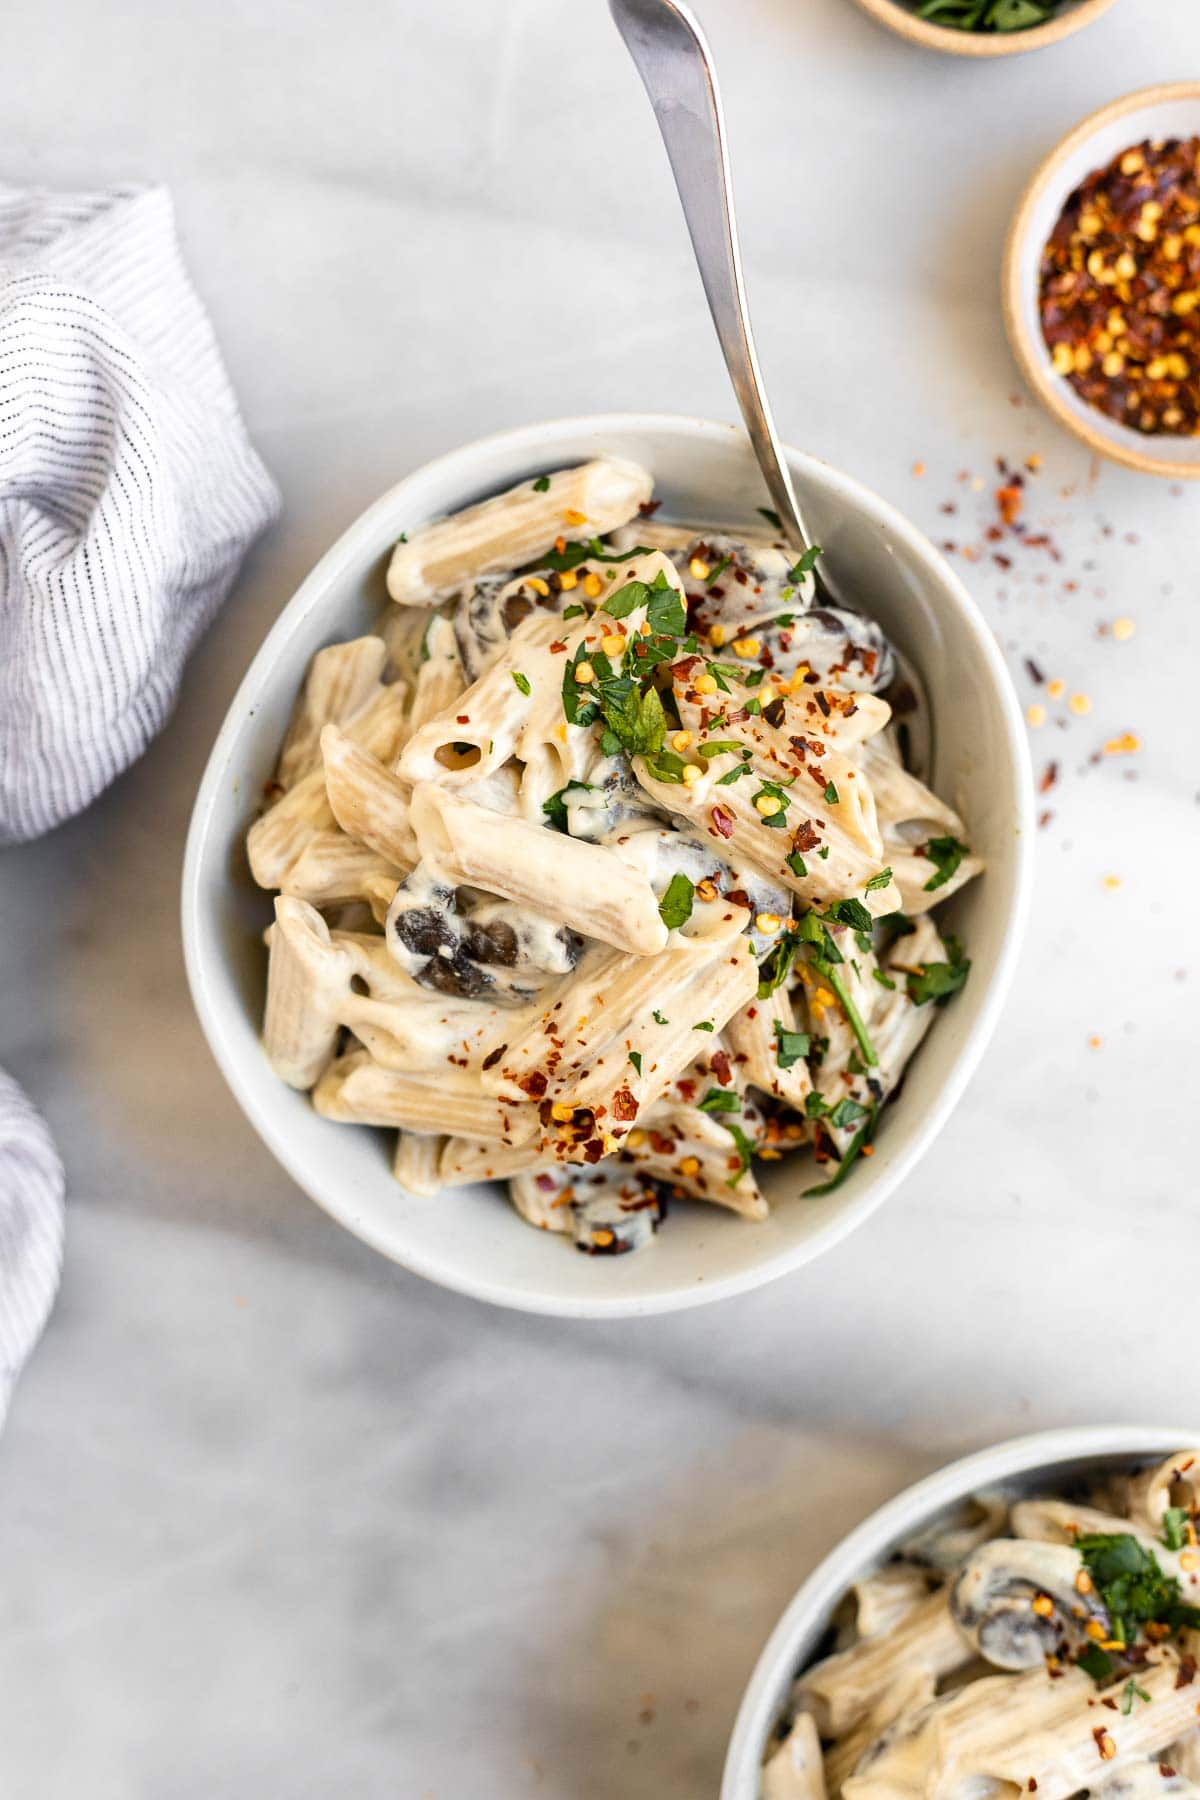 Two bowls of the cashew cream pasta with mushrooms and parsley.